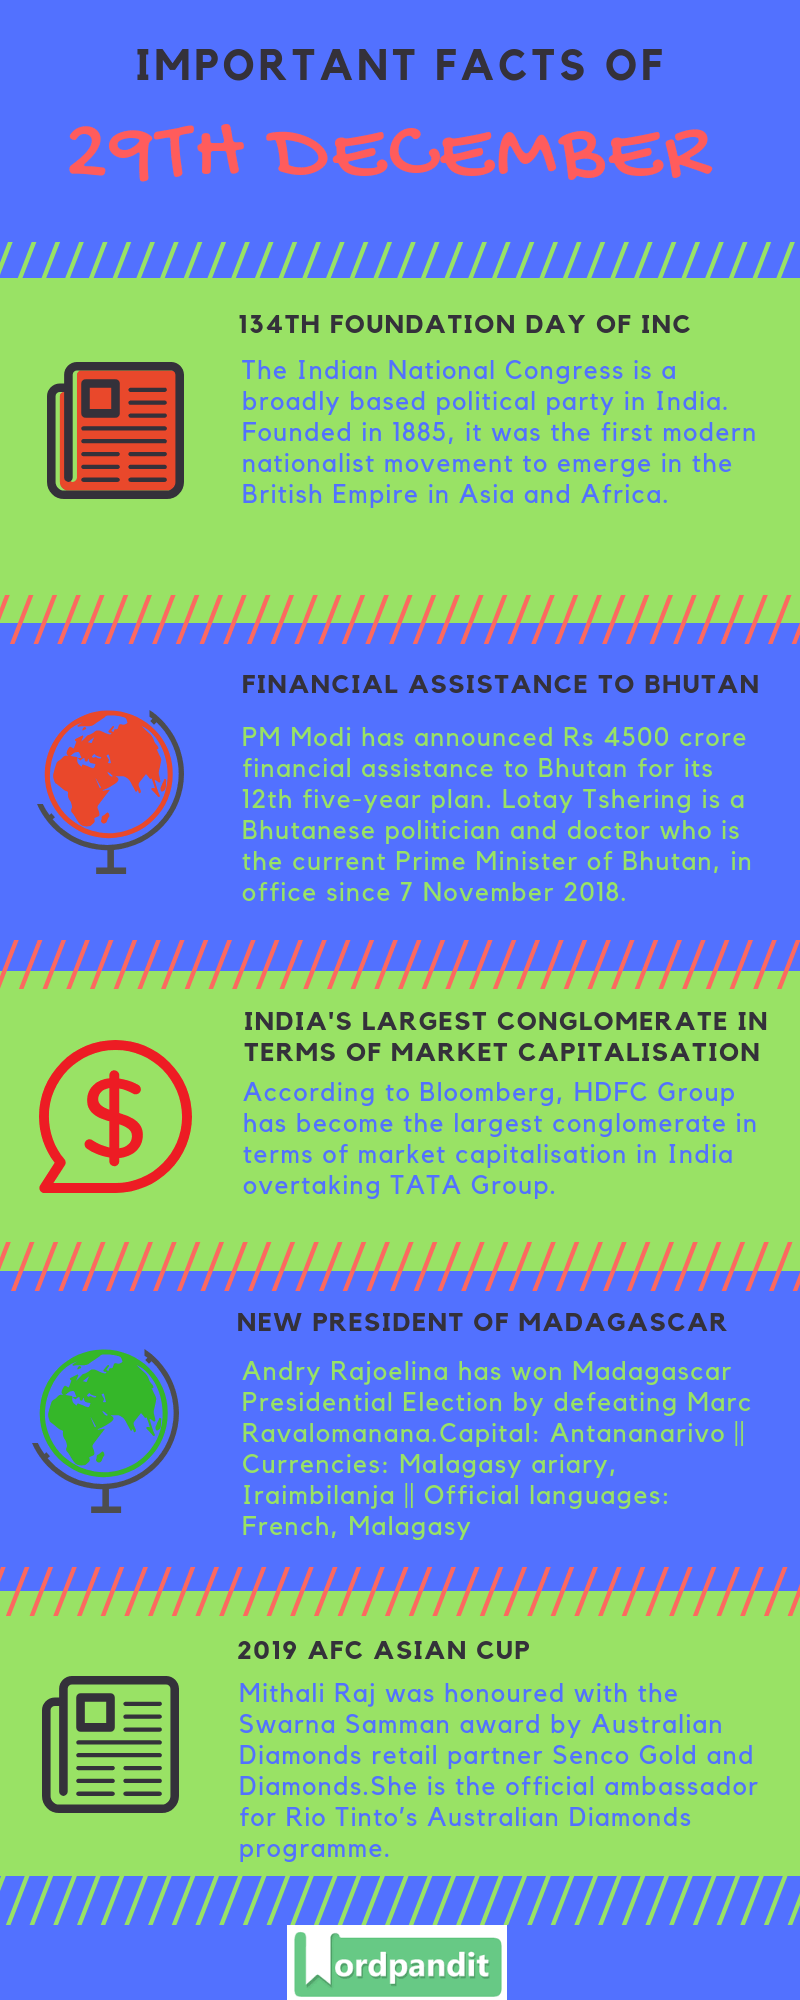 Daily Current Affairs 29 December 2018 Current Affairs Quiz 29 December 2018 Current Affairs Infographic